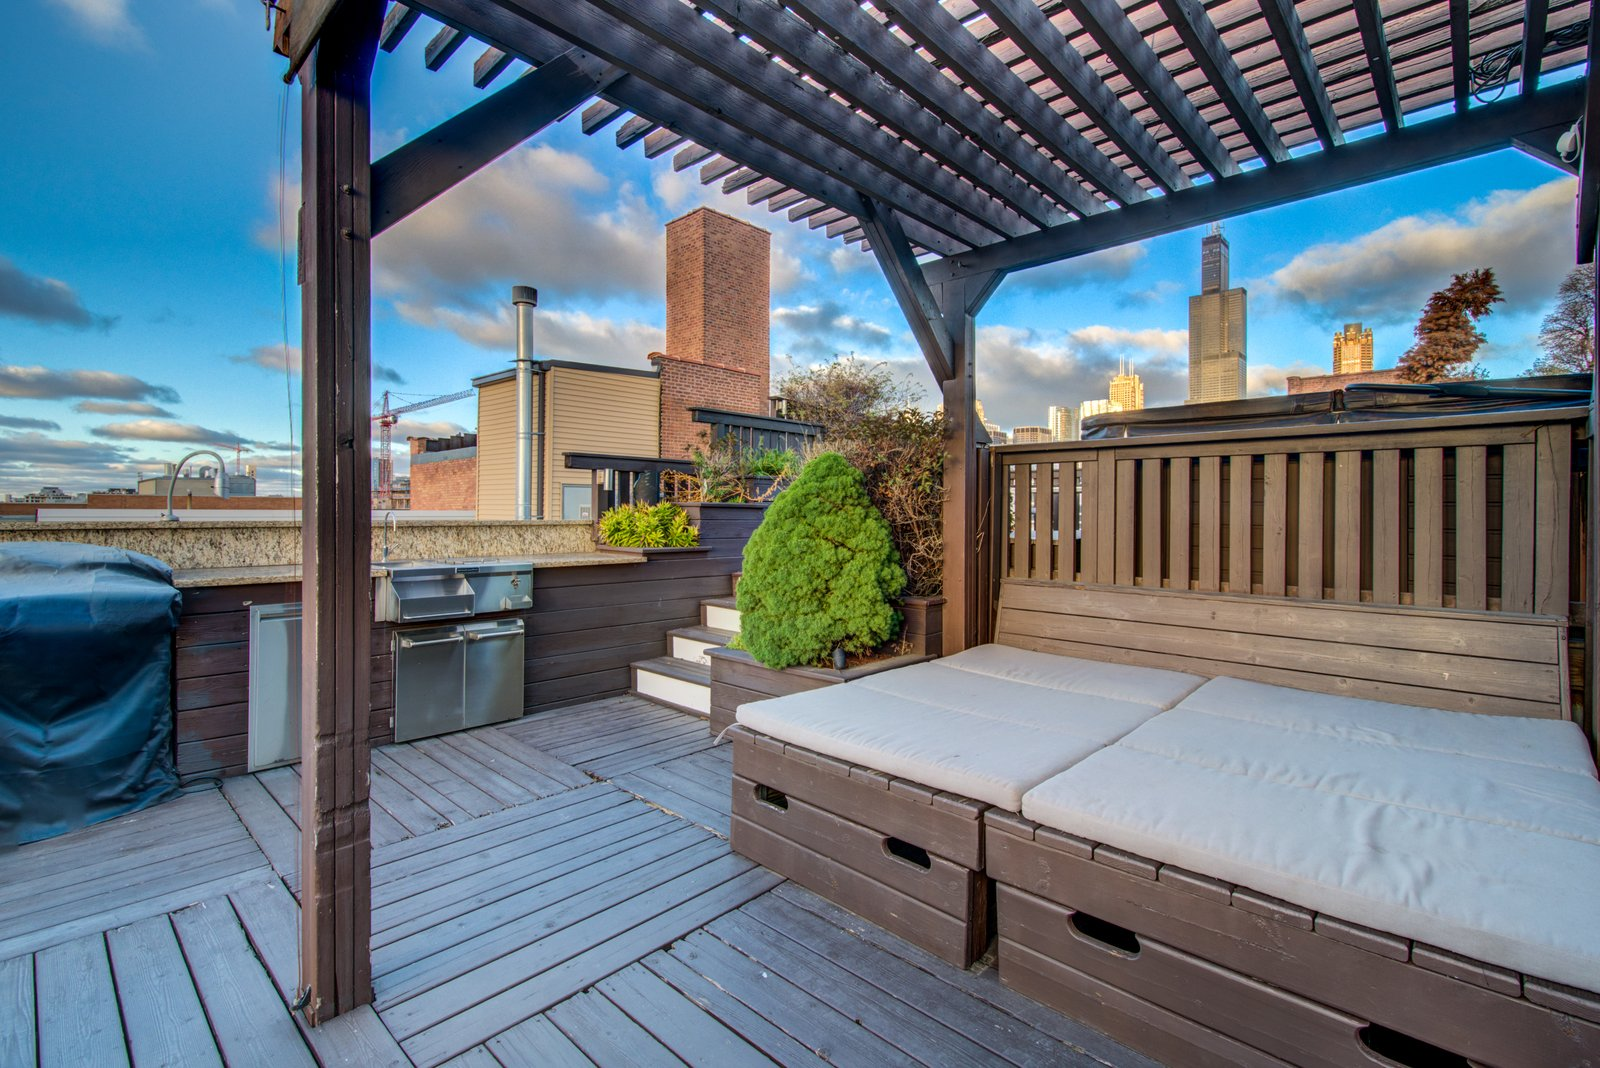 Outdoor and Rooftop  Penthouse That Starred on NBC's 'Chicago Fire' Asks $1.775M